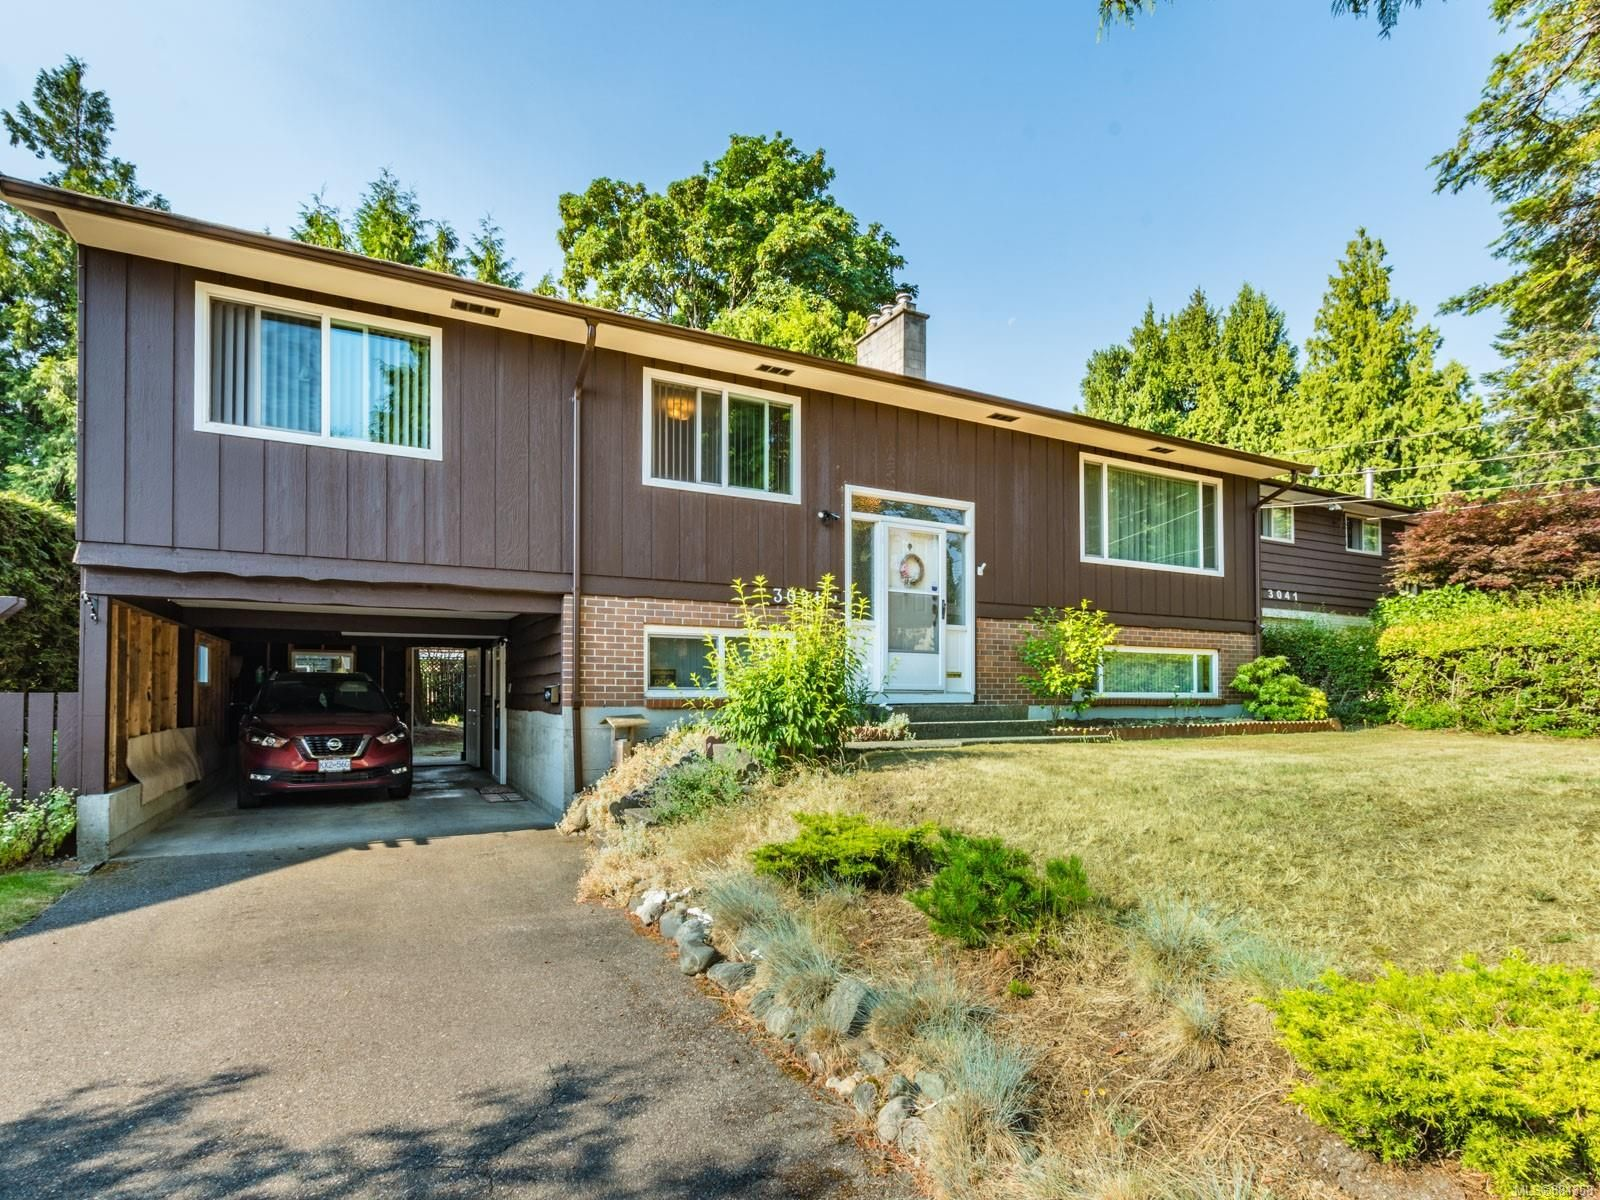 Main Photo: 3021 Crestwood Pl in : Na Departure Bay House for sale (Nanaimo)  : MLS®# 881358